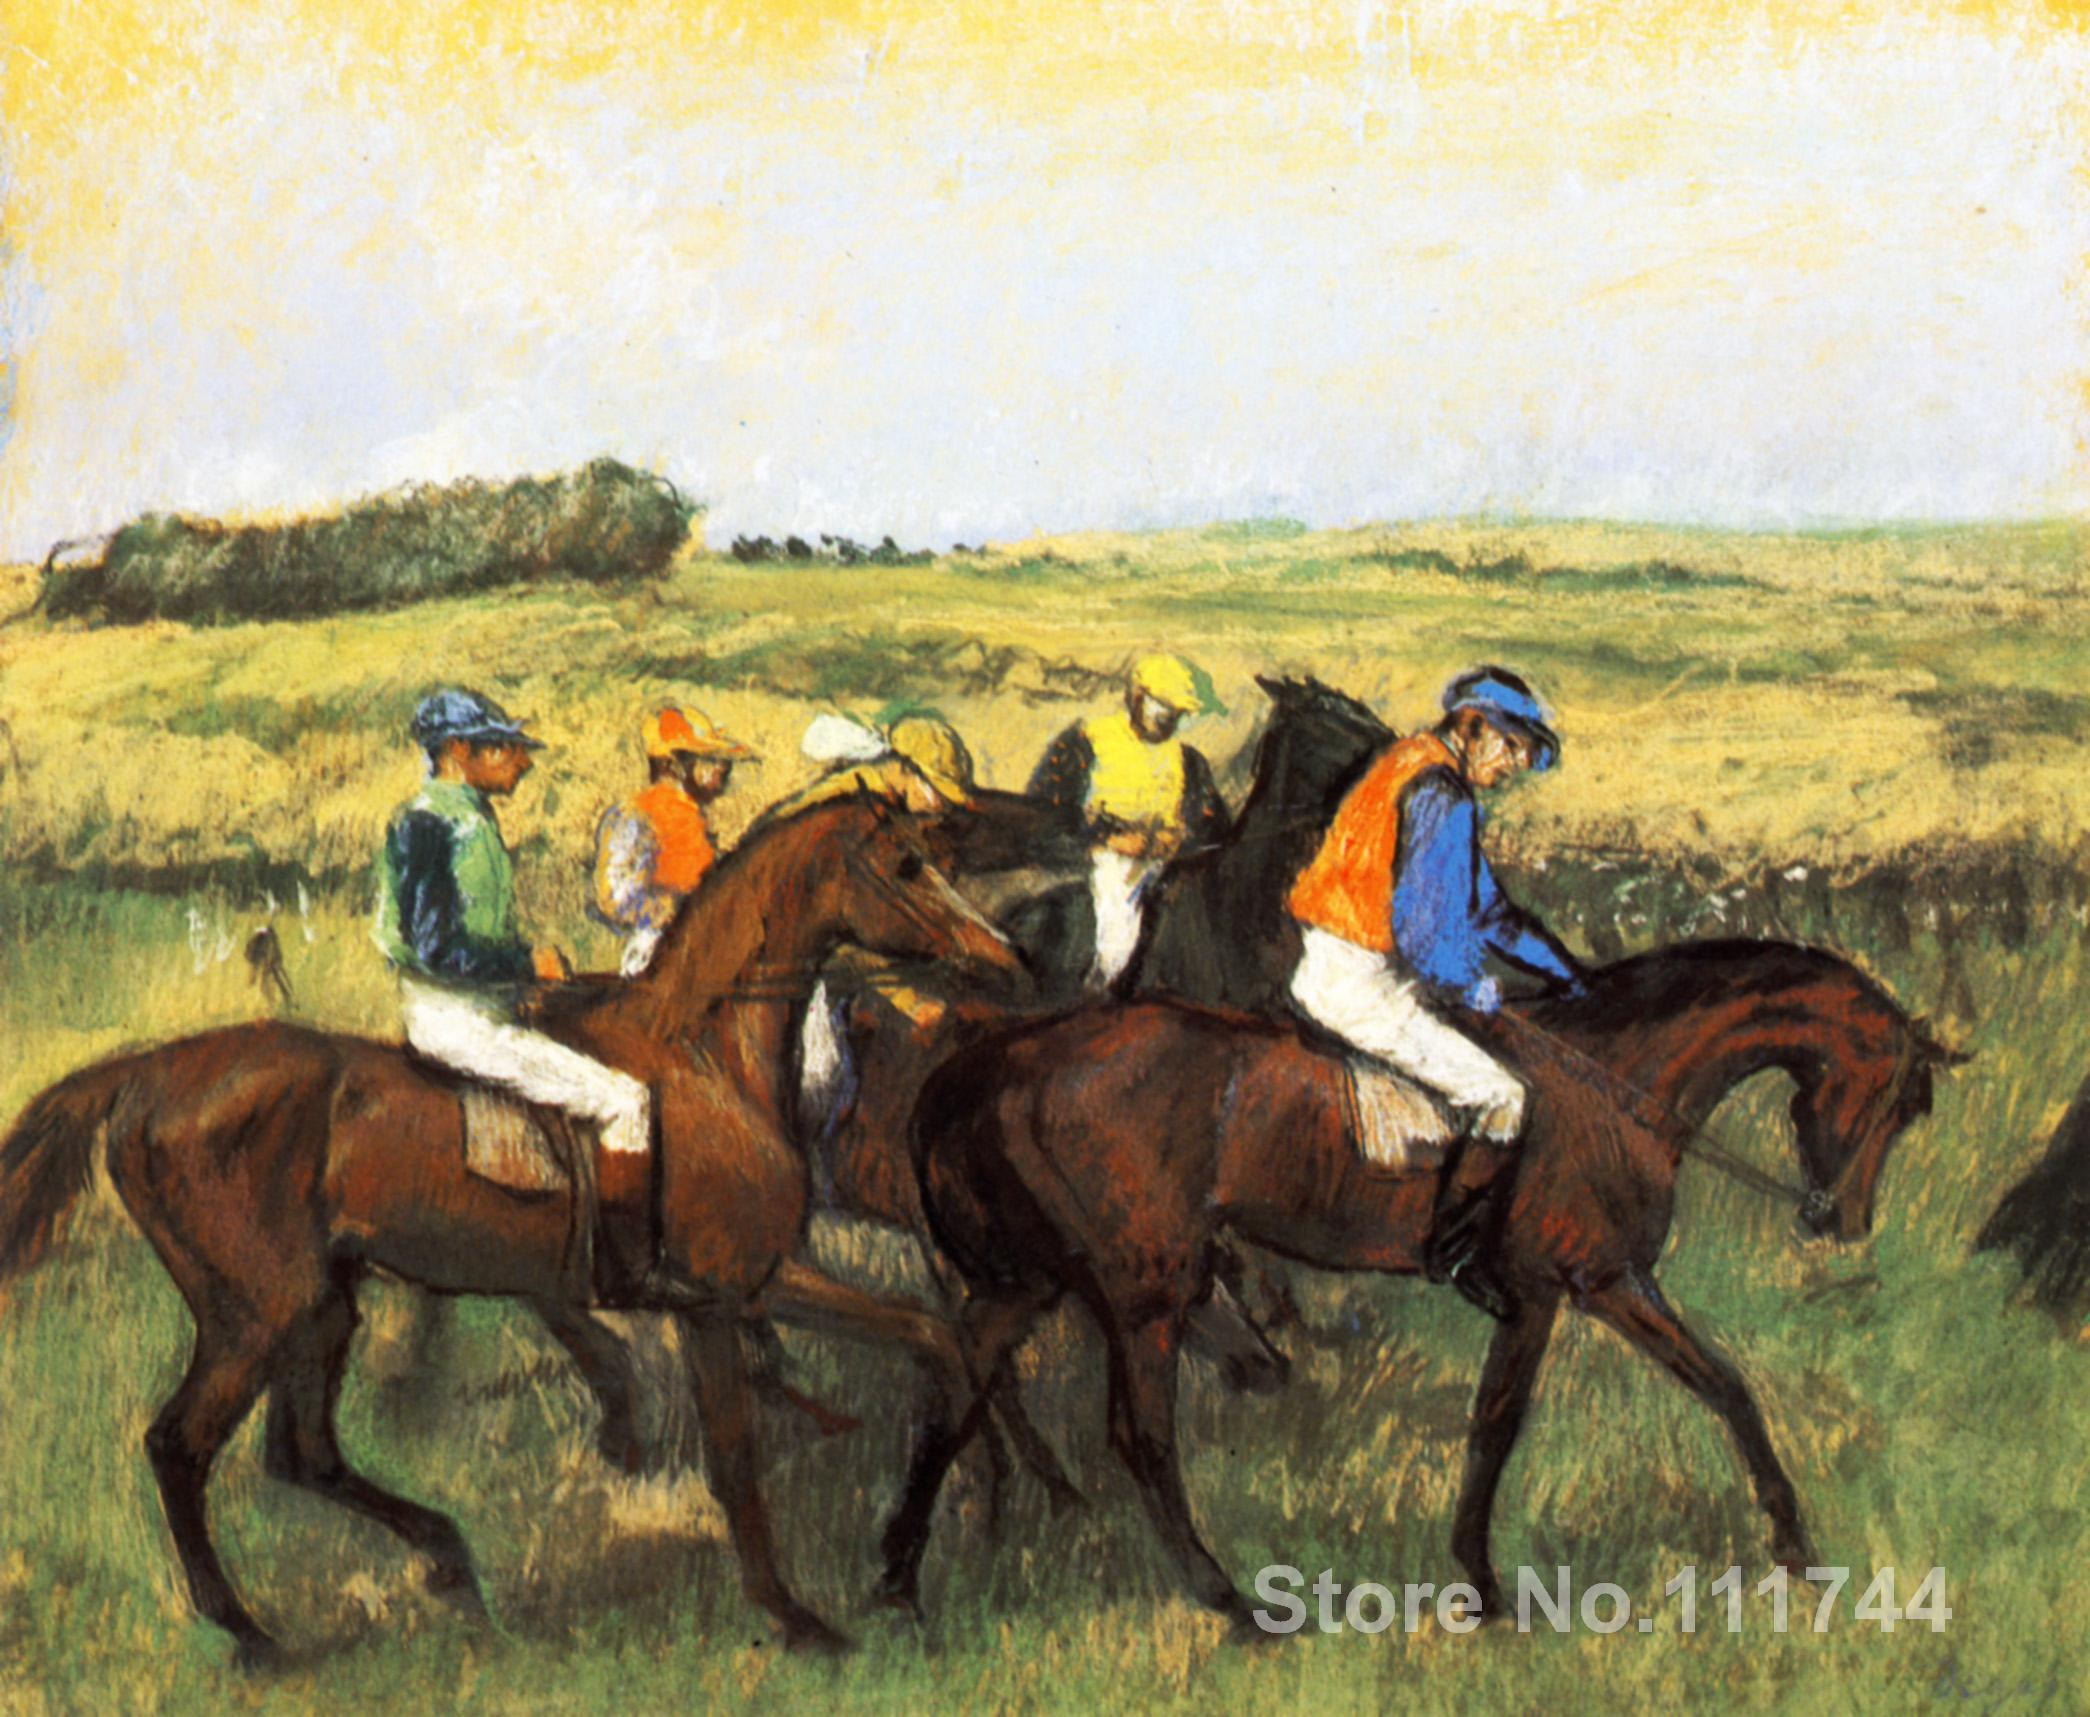 Kitchen art The Racecourse by Edgar Degas paintings Home Decor Hand painted High qualityKitchen art The Racecourse by Edgar Degas paintings Home Decor Hand painted High quality